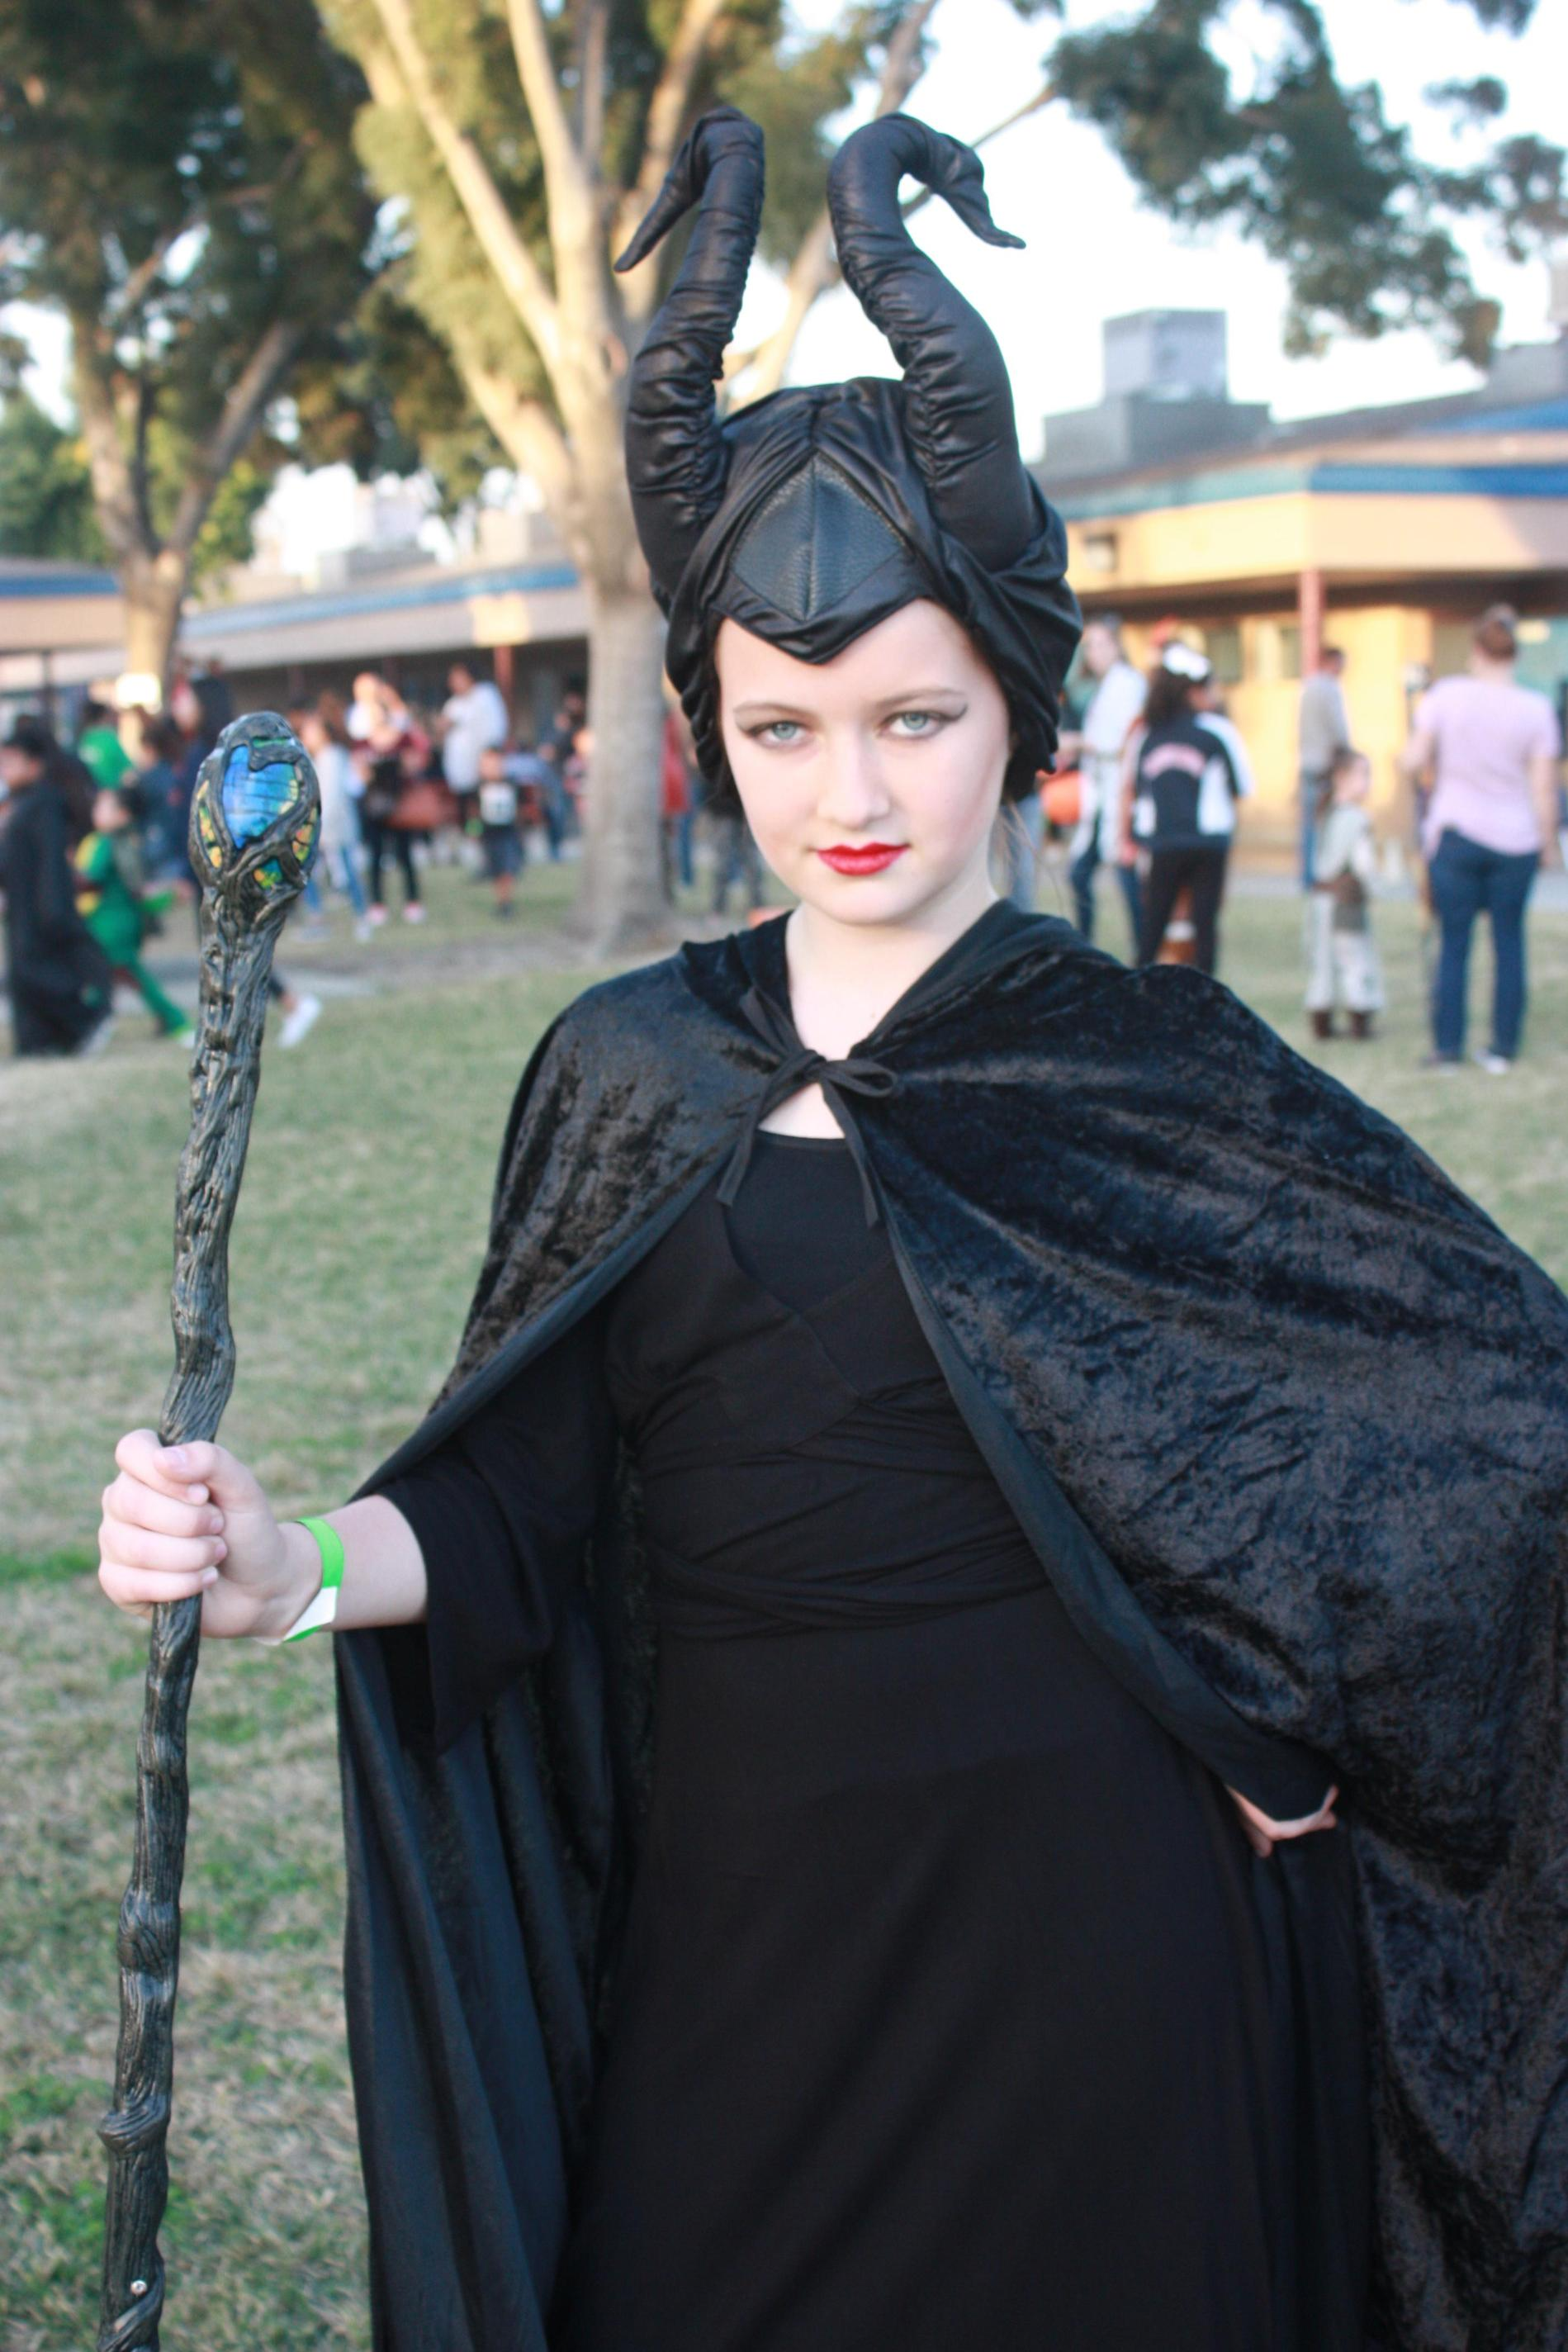 A student dressed up as Maleficent.